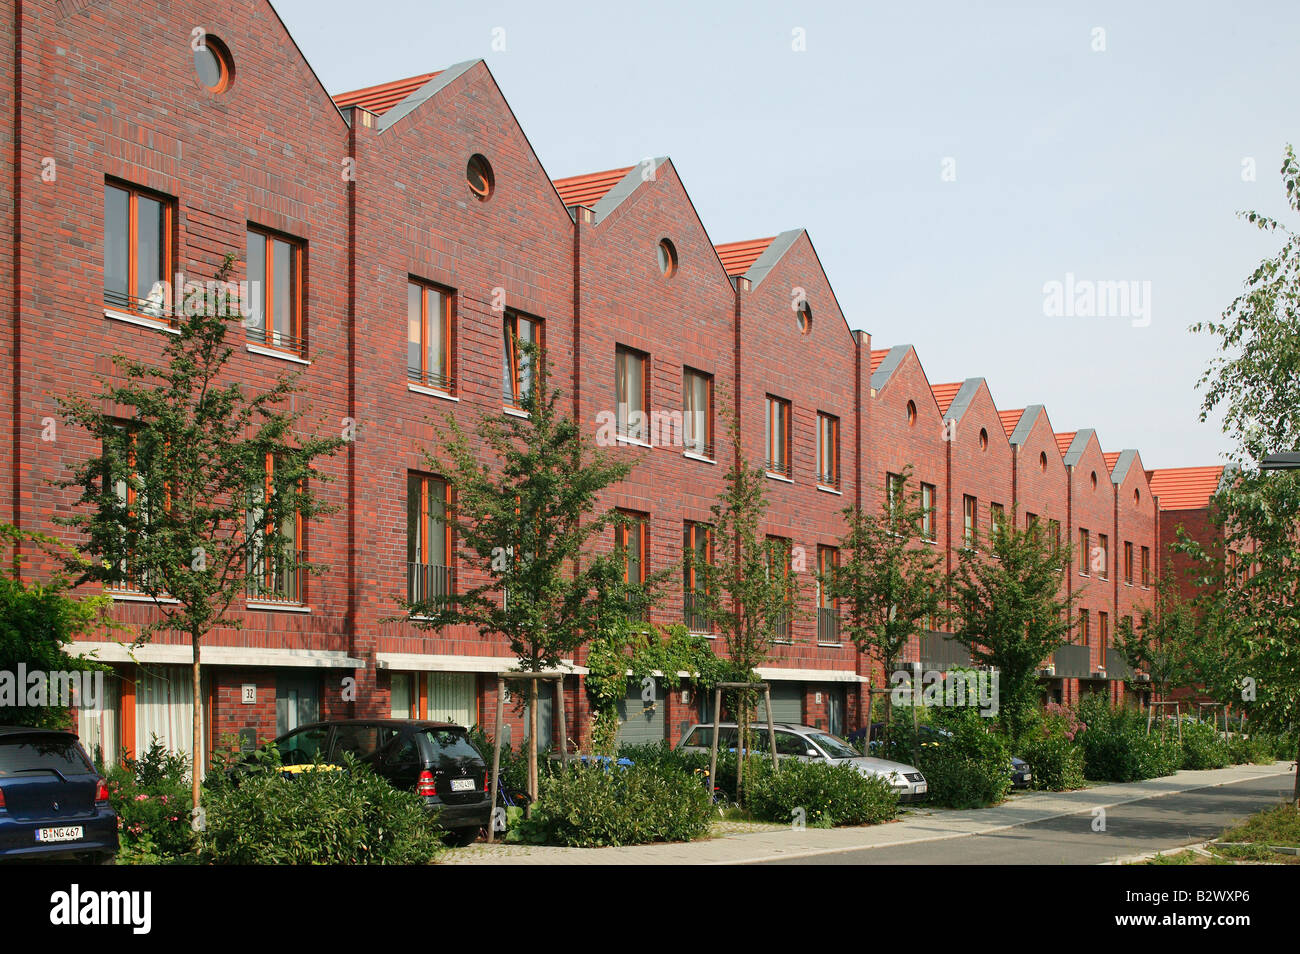 terraced houses in the rummelsburg district, berlin, germany stock